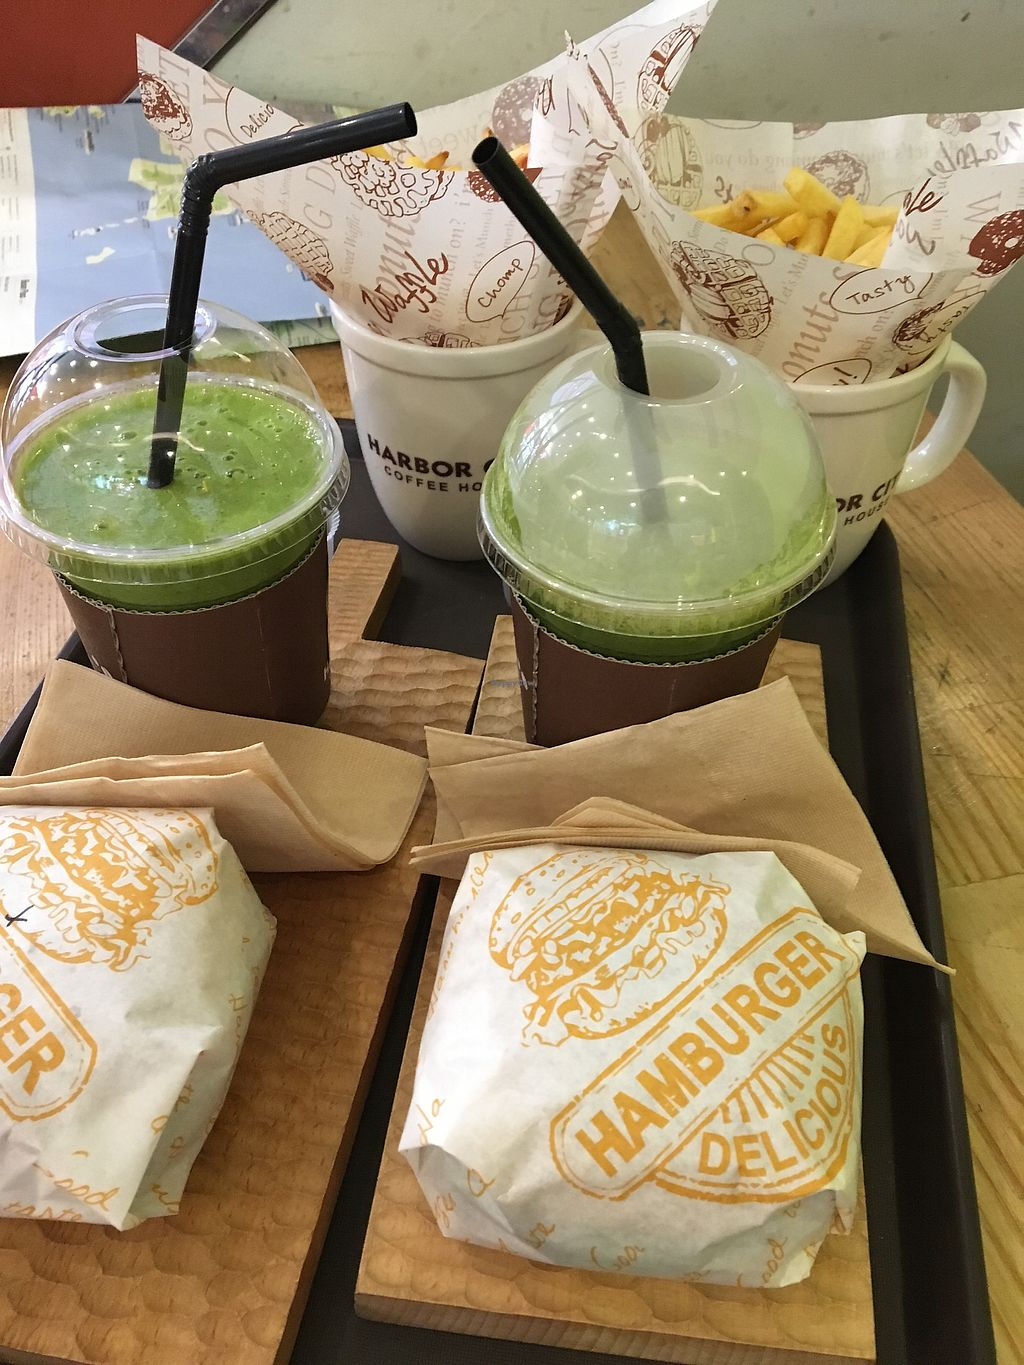 """Photo of Moomoo Burger & Smoothie  by <a href=""""/members/profile/NielsKrekt"""">NielsKrekt</a> <br/>Delicious <br/> September 27, 2017  - <a href='/contact/abuse/image/85434/308939'>Report</a>"""